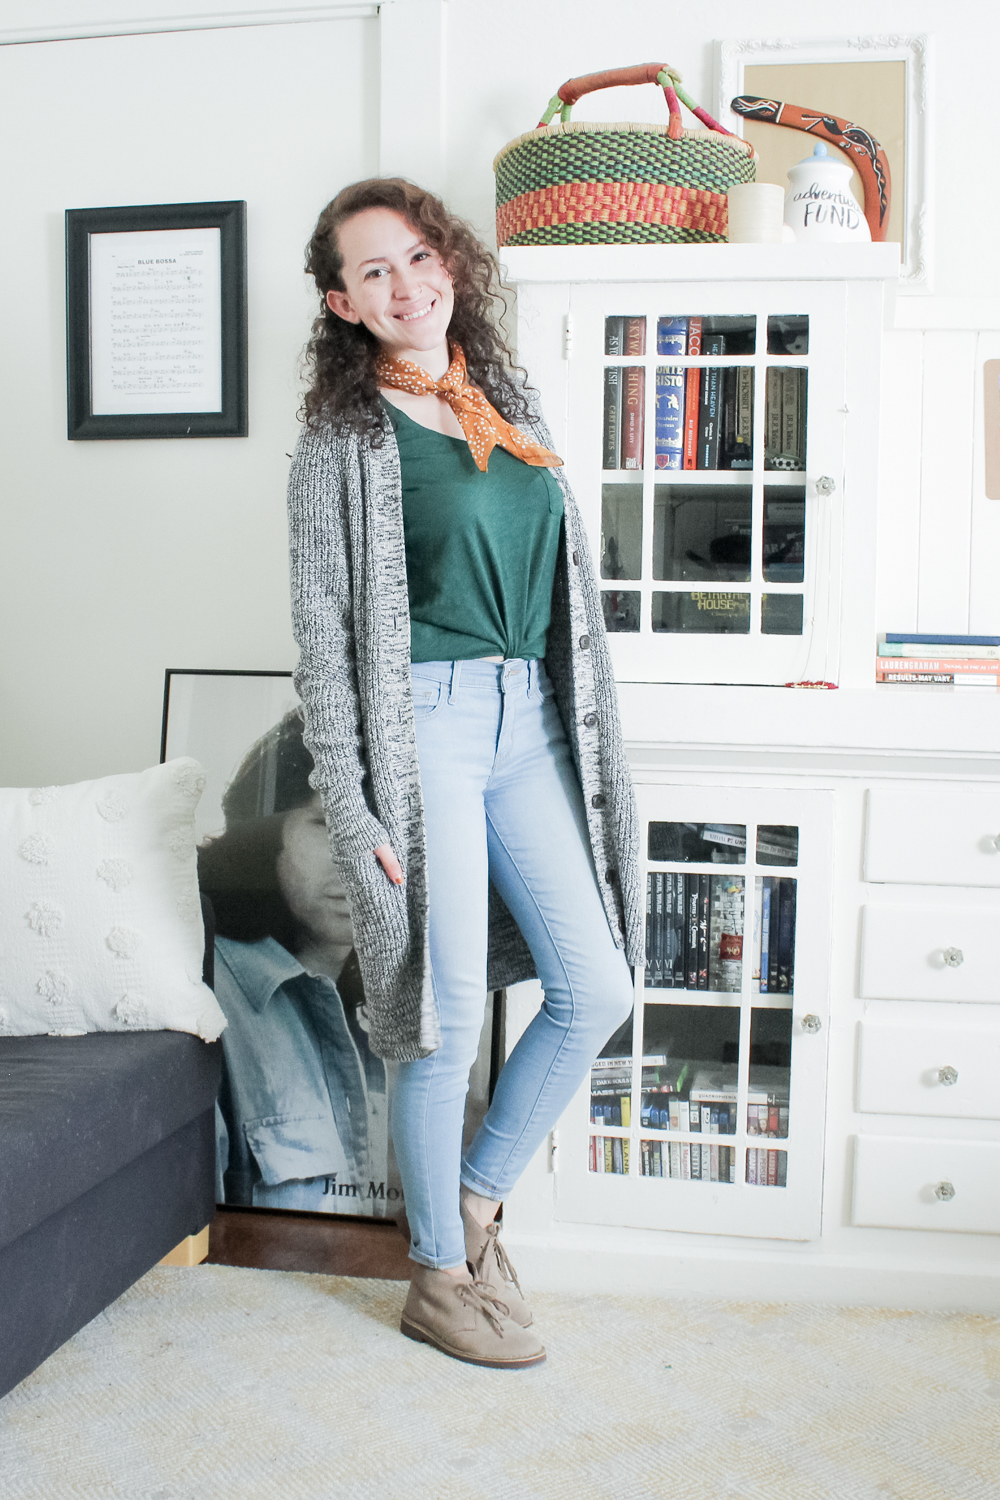 a casual outfit from my spring capsule wardrobe | striped shirt, levis skinny jeans with desert boots | tintedgreen